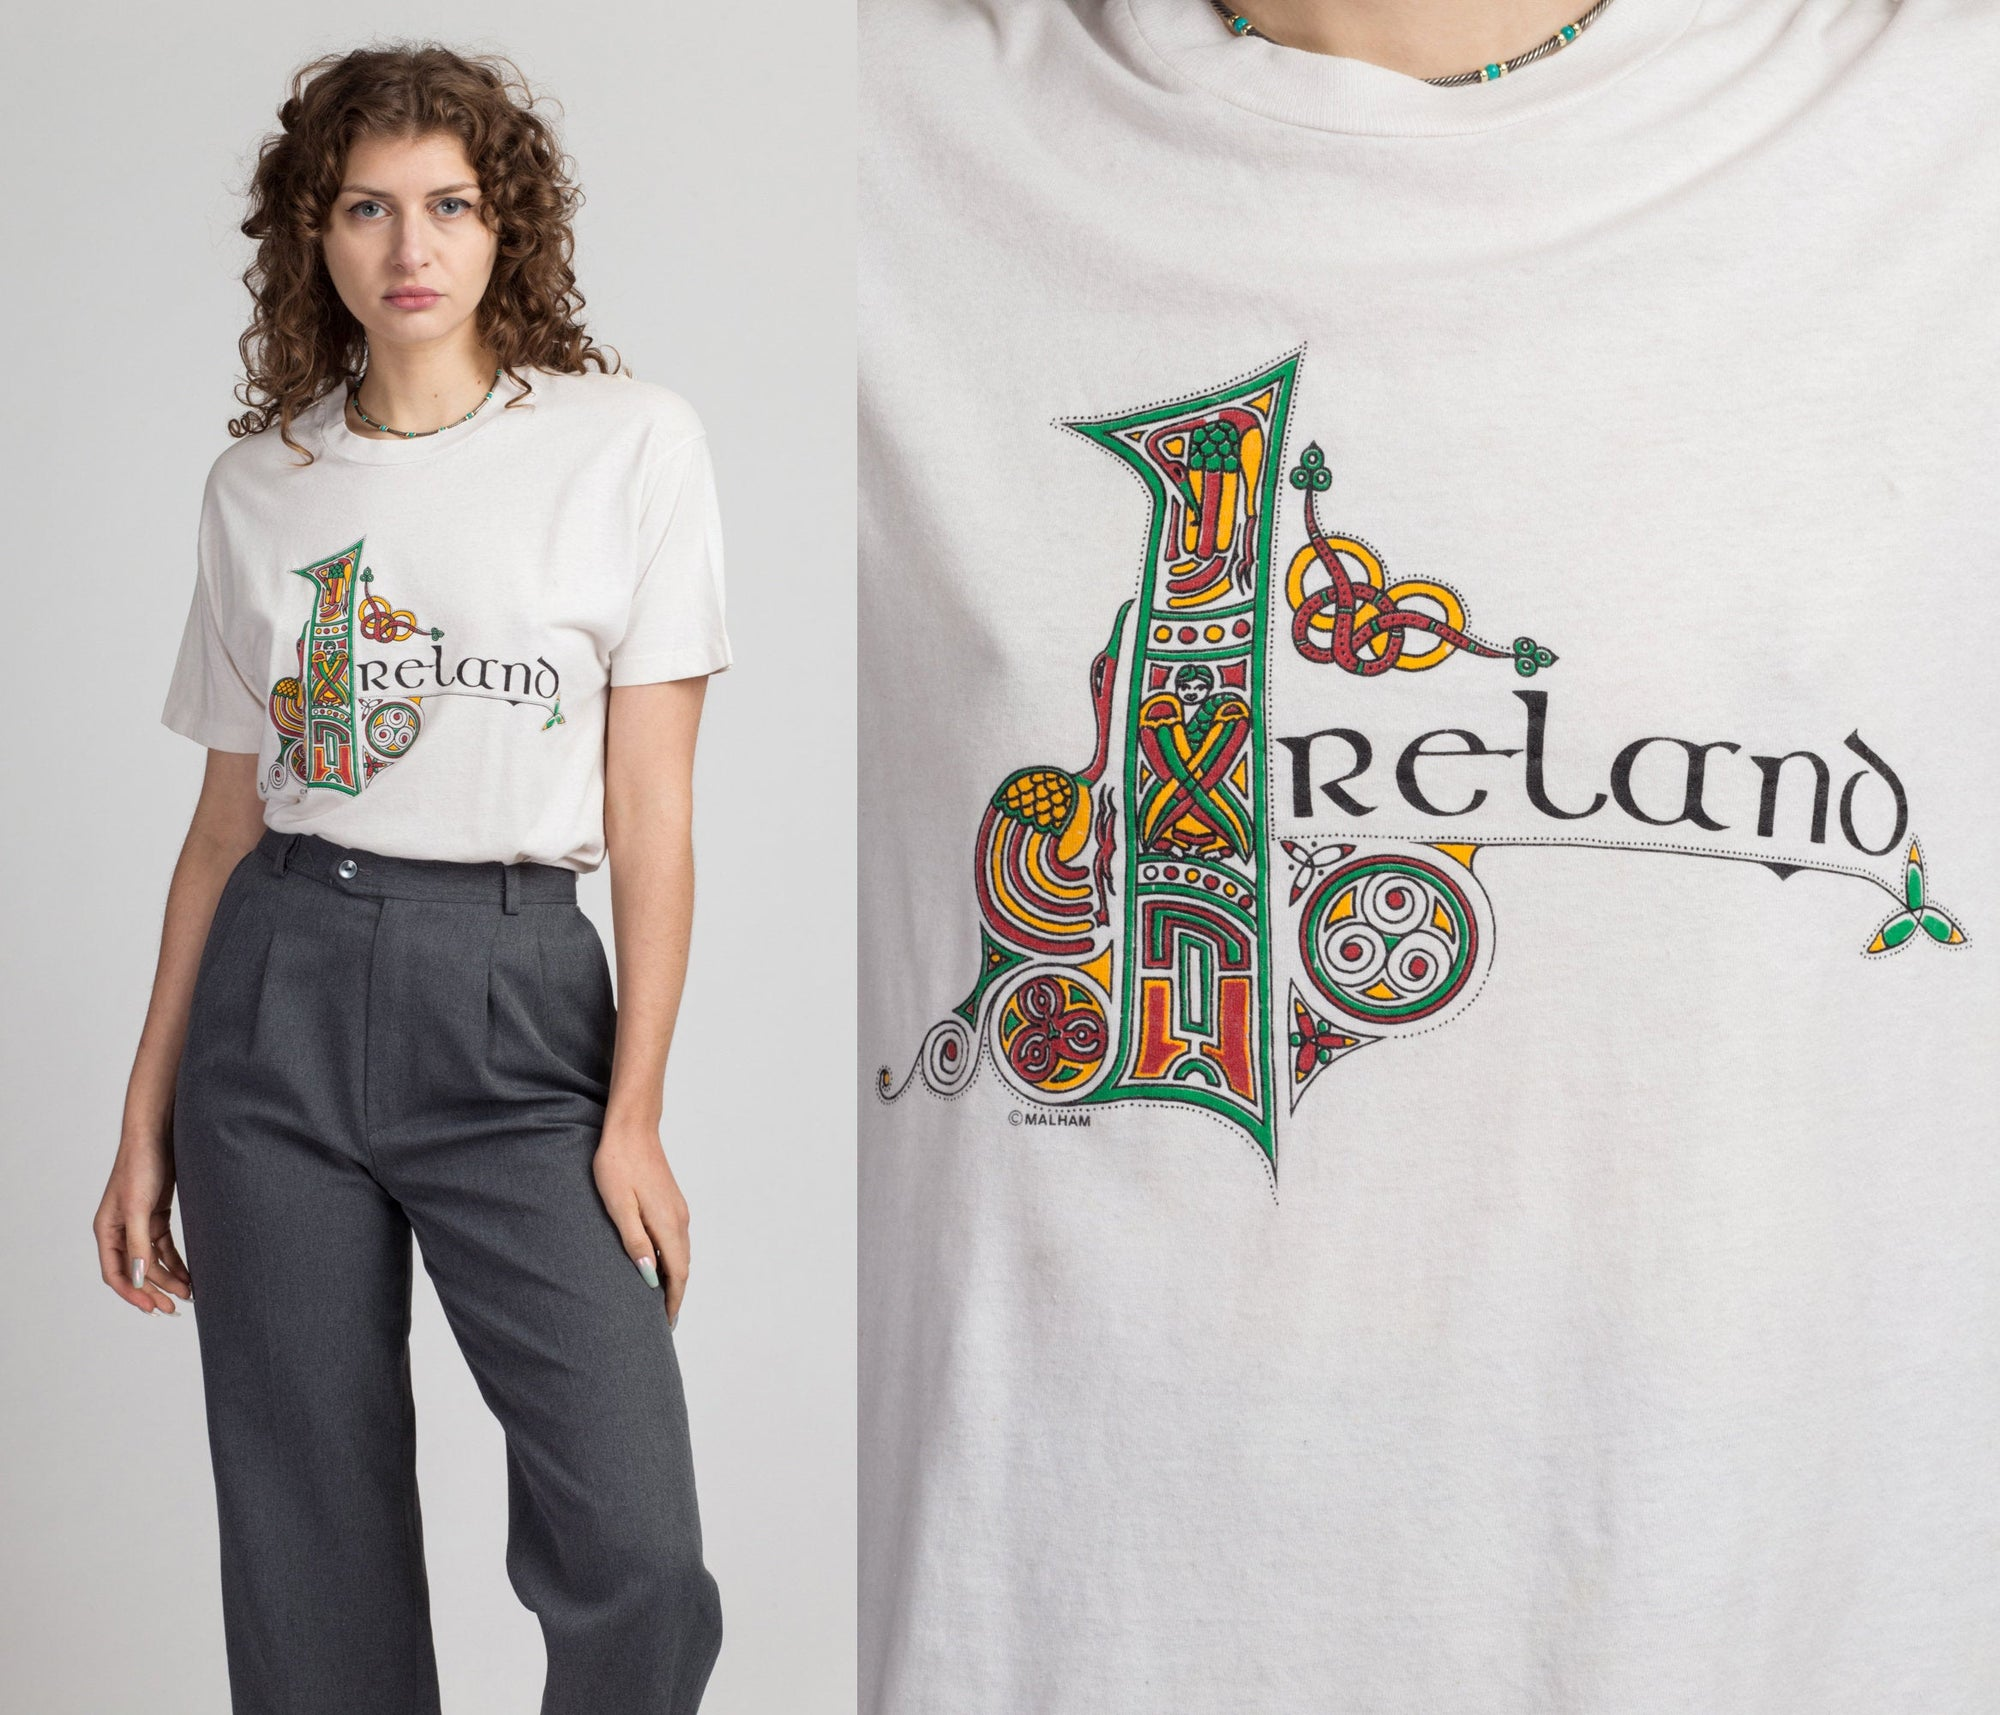 80s Stylized Ireland T Shirt - Large | Vintage Illuminated Manuscript Celtic Lettering Graphic Tee